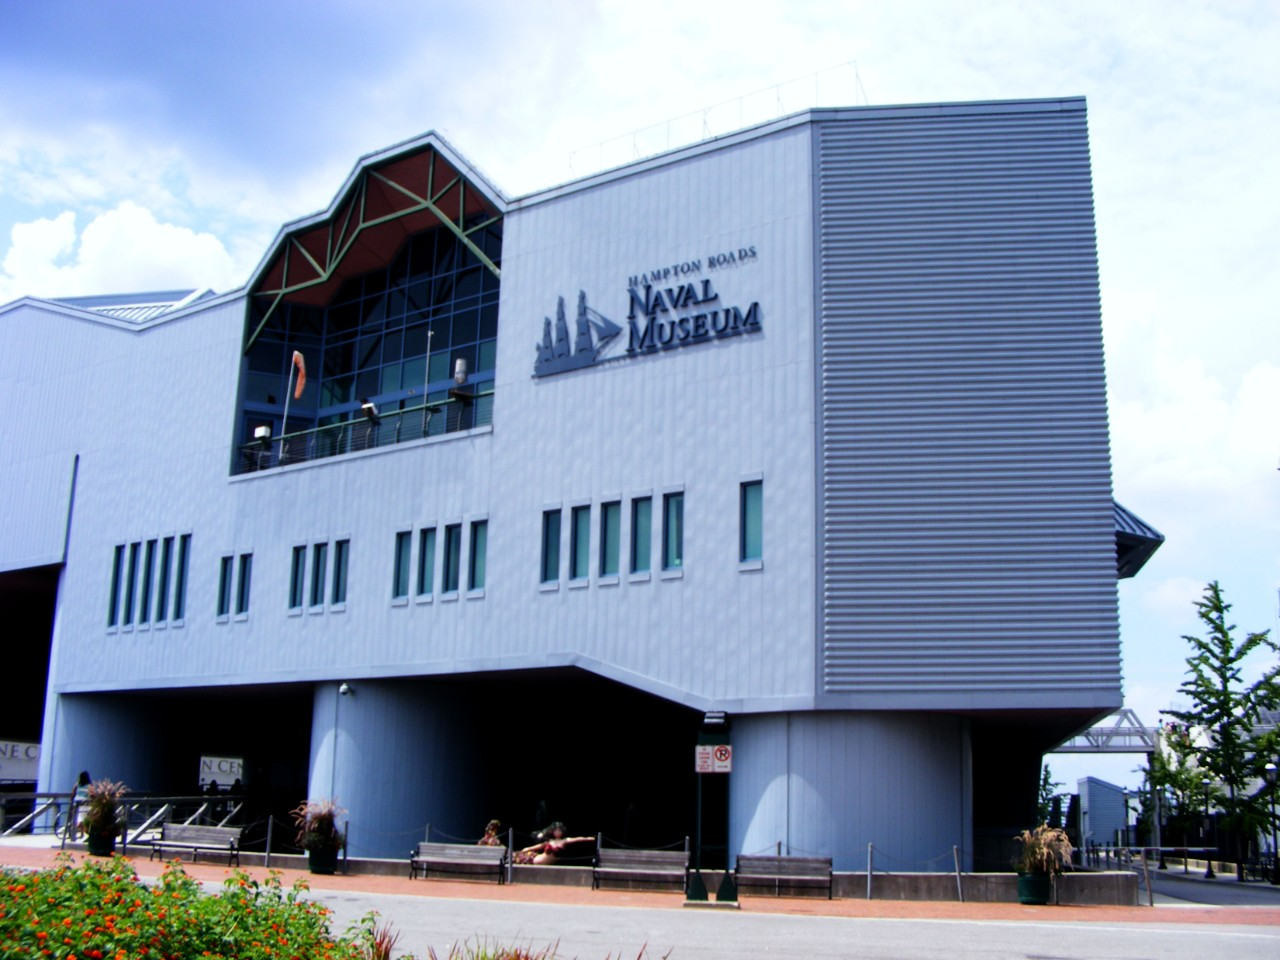 Exterior HRNM 2014 (New Image for Plan Your Visit)